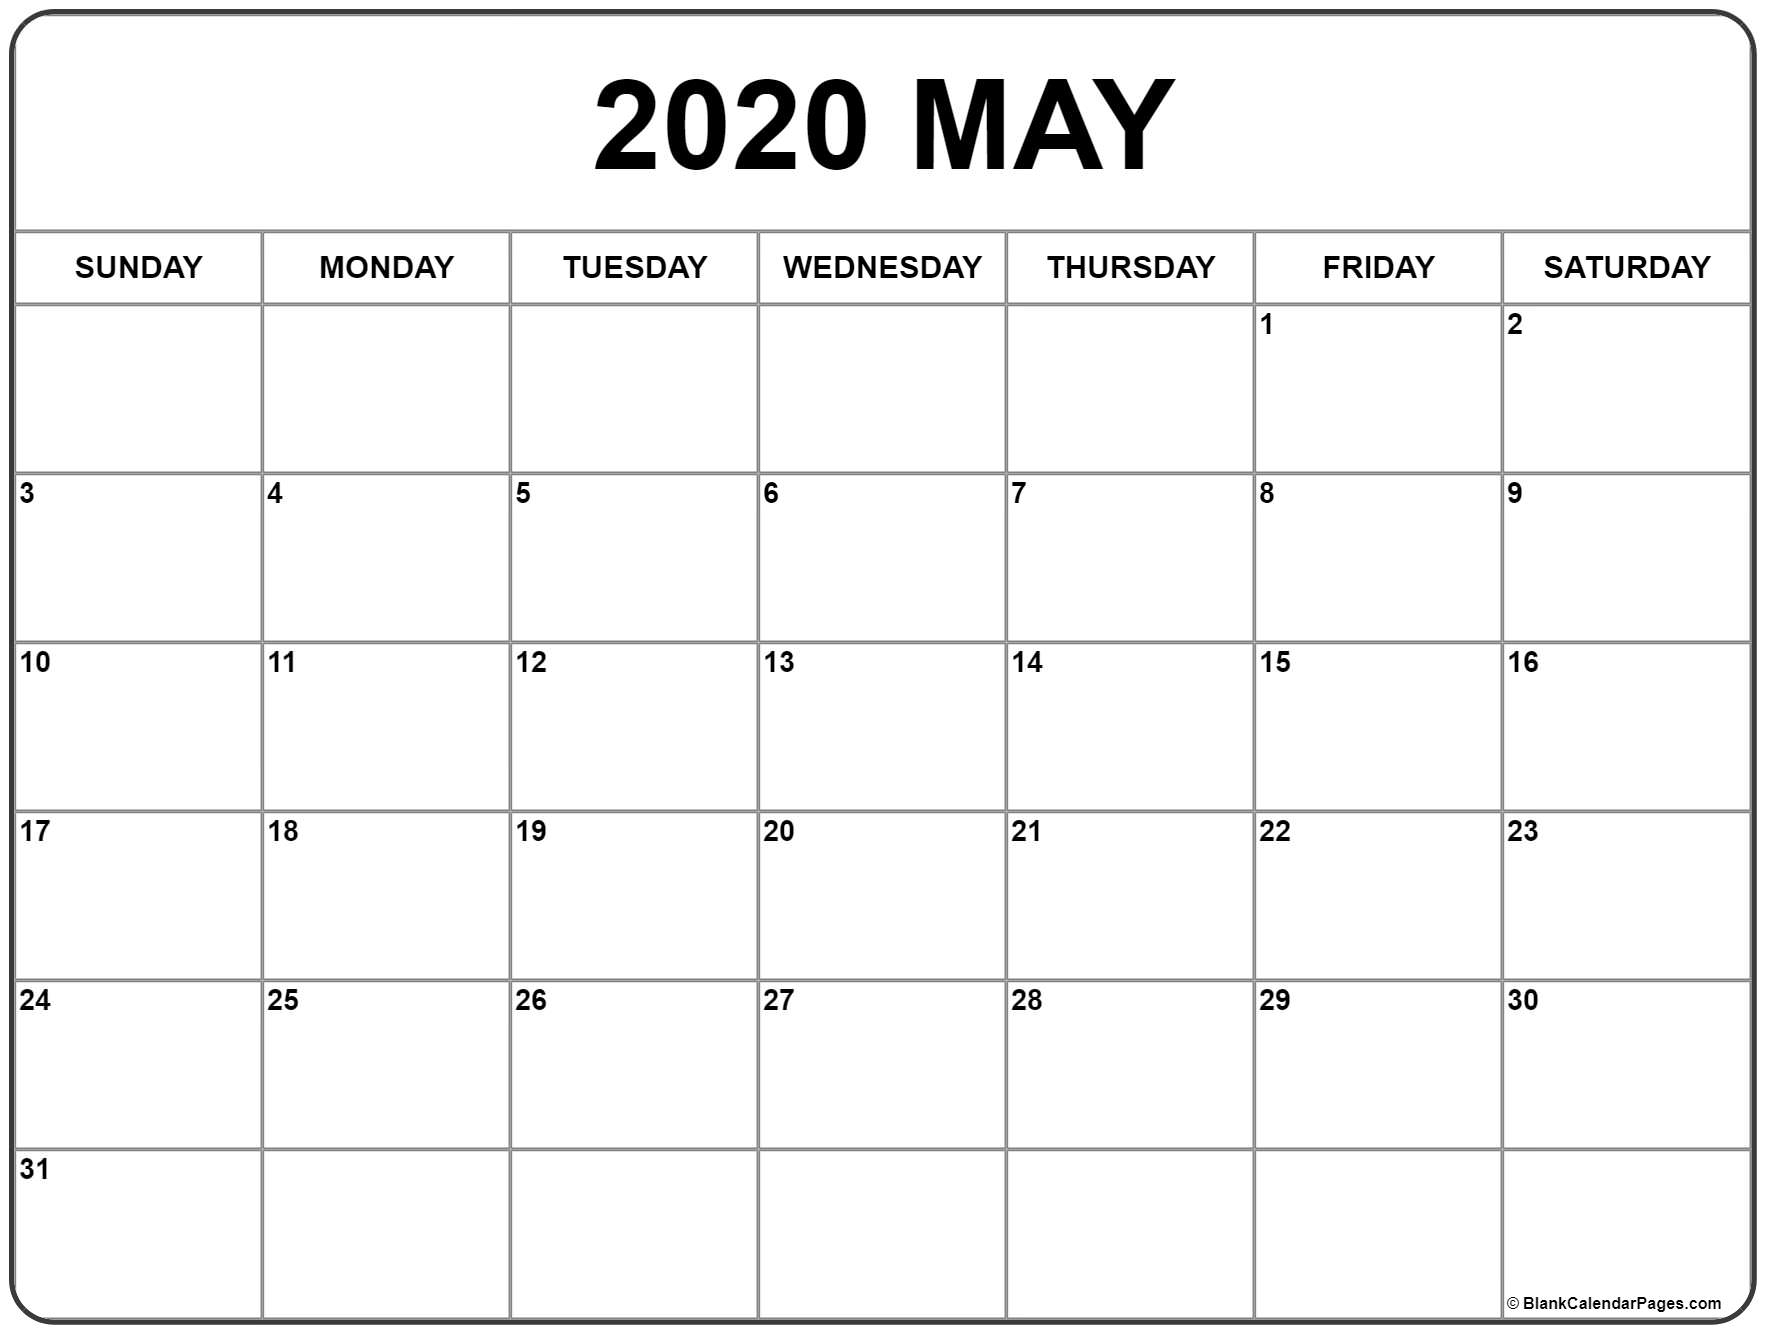 May 2020 Calendar Free - Colona.rsd7 throughout Free Printable 2020 Canadian Calendar Motivational